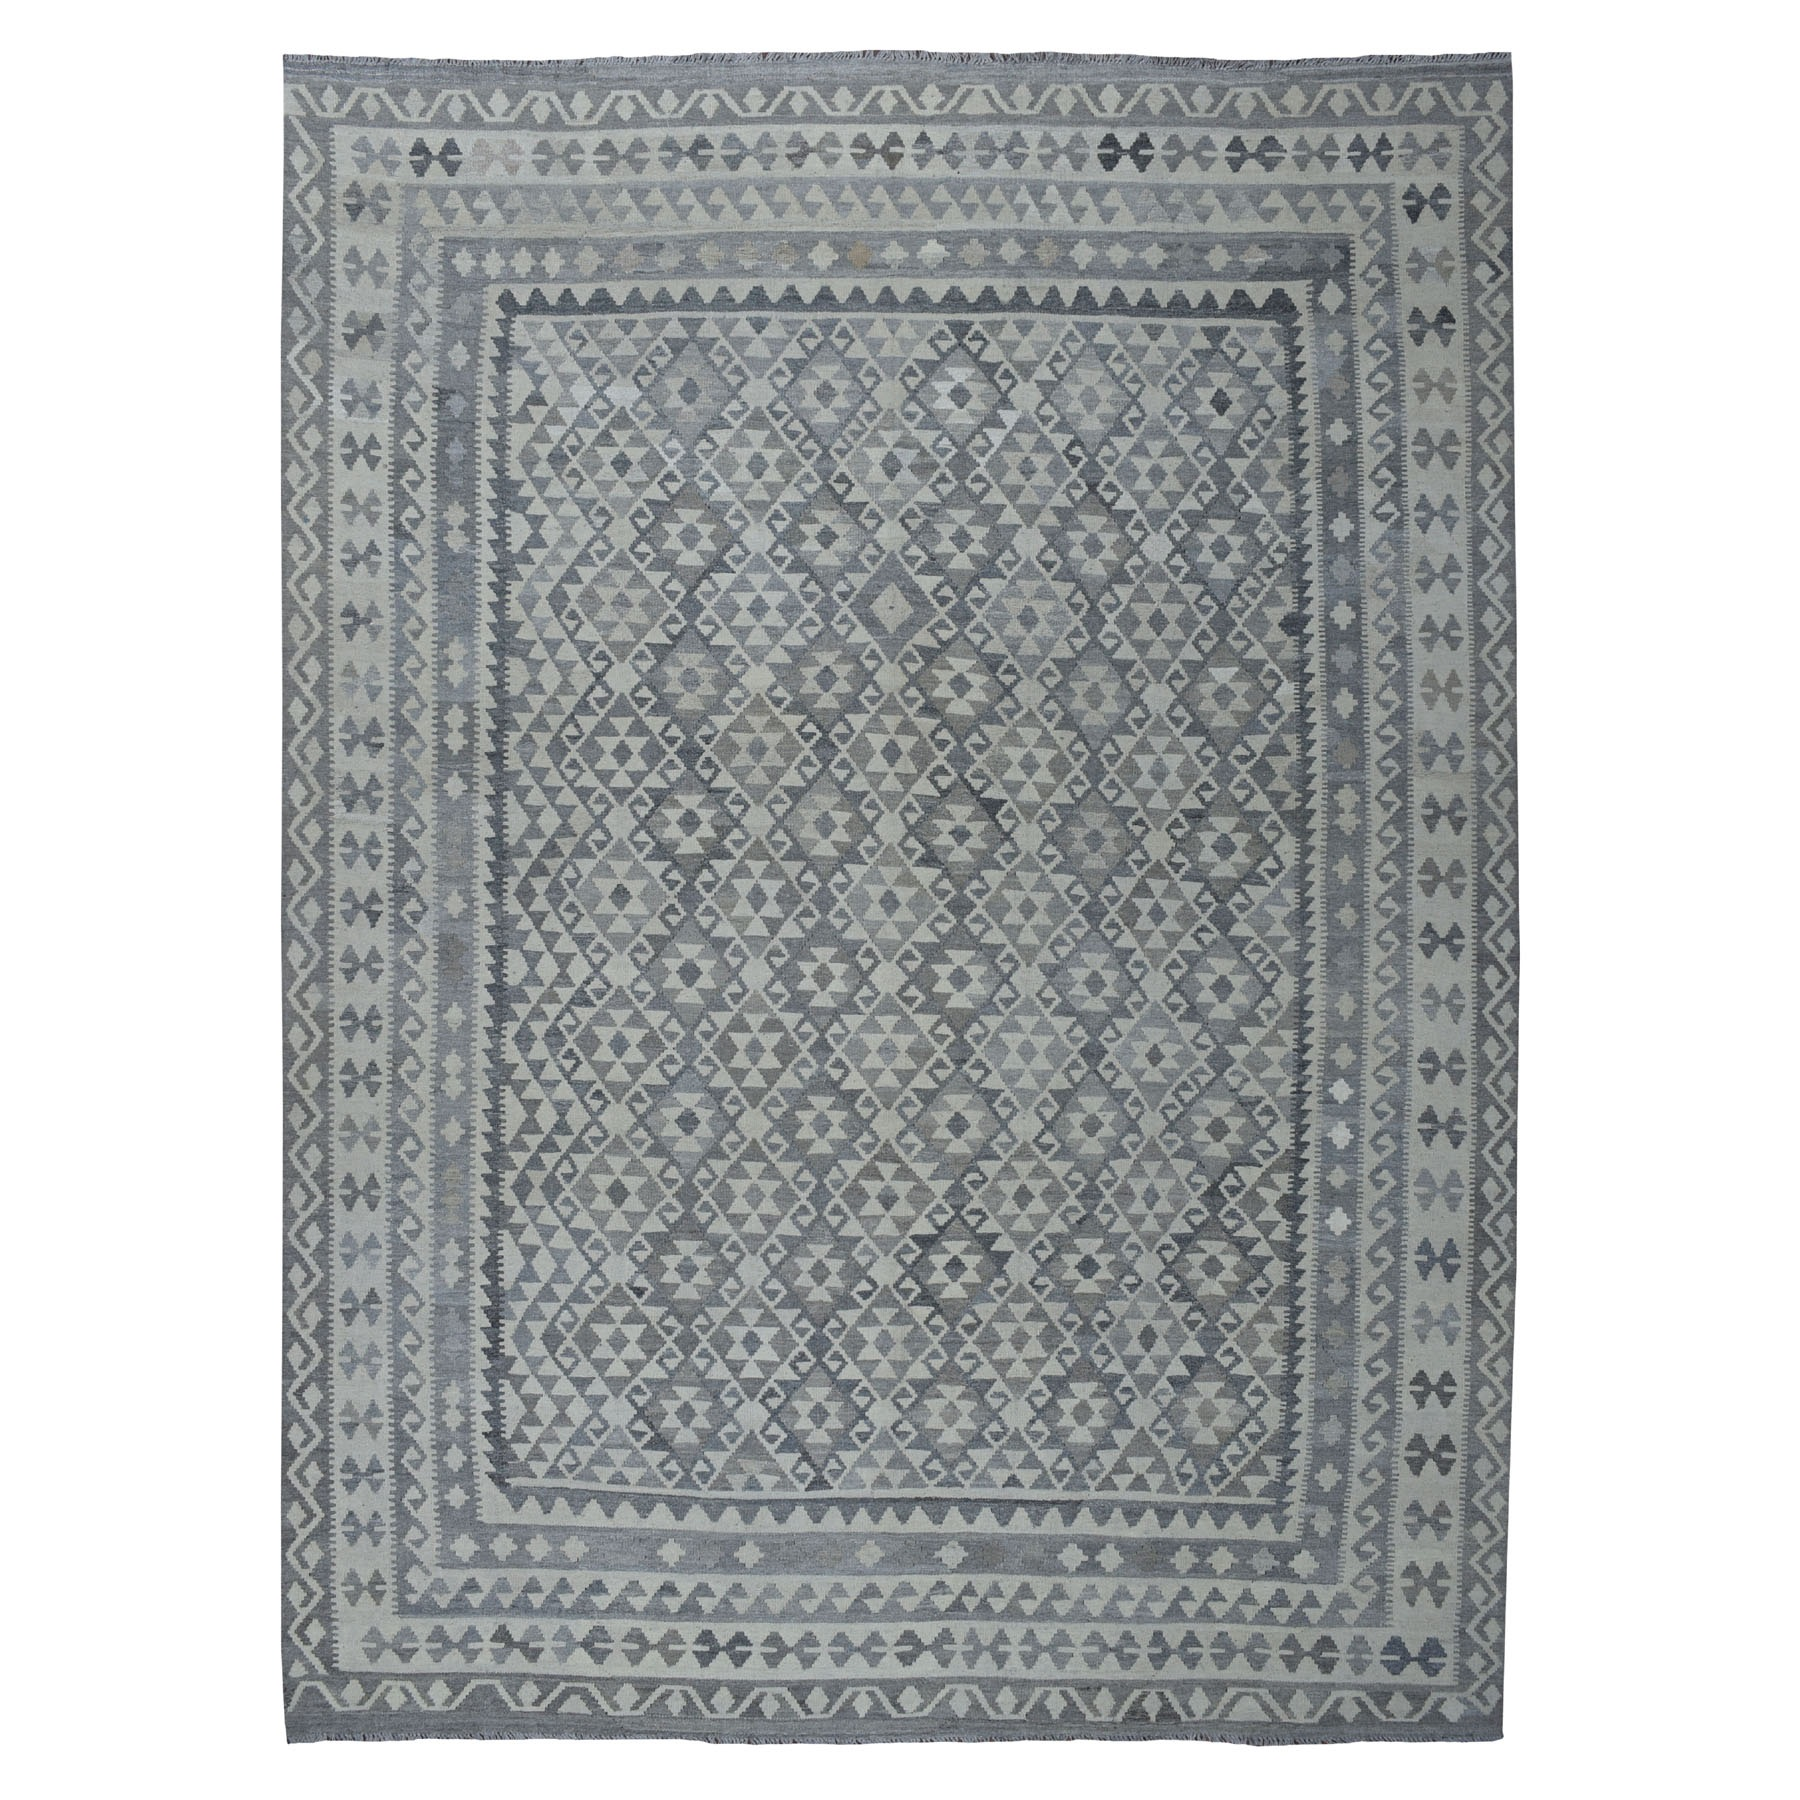 """8'9""""X11'4"""" Undyed Natural Wool Afghan Kilim Reversible Hand Woven Oriental Rug moaeb988"""